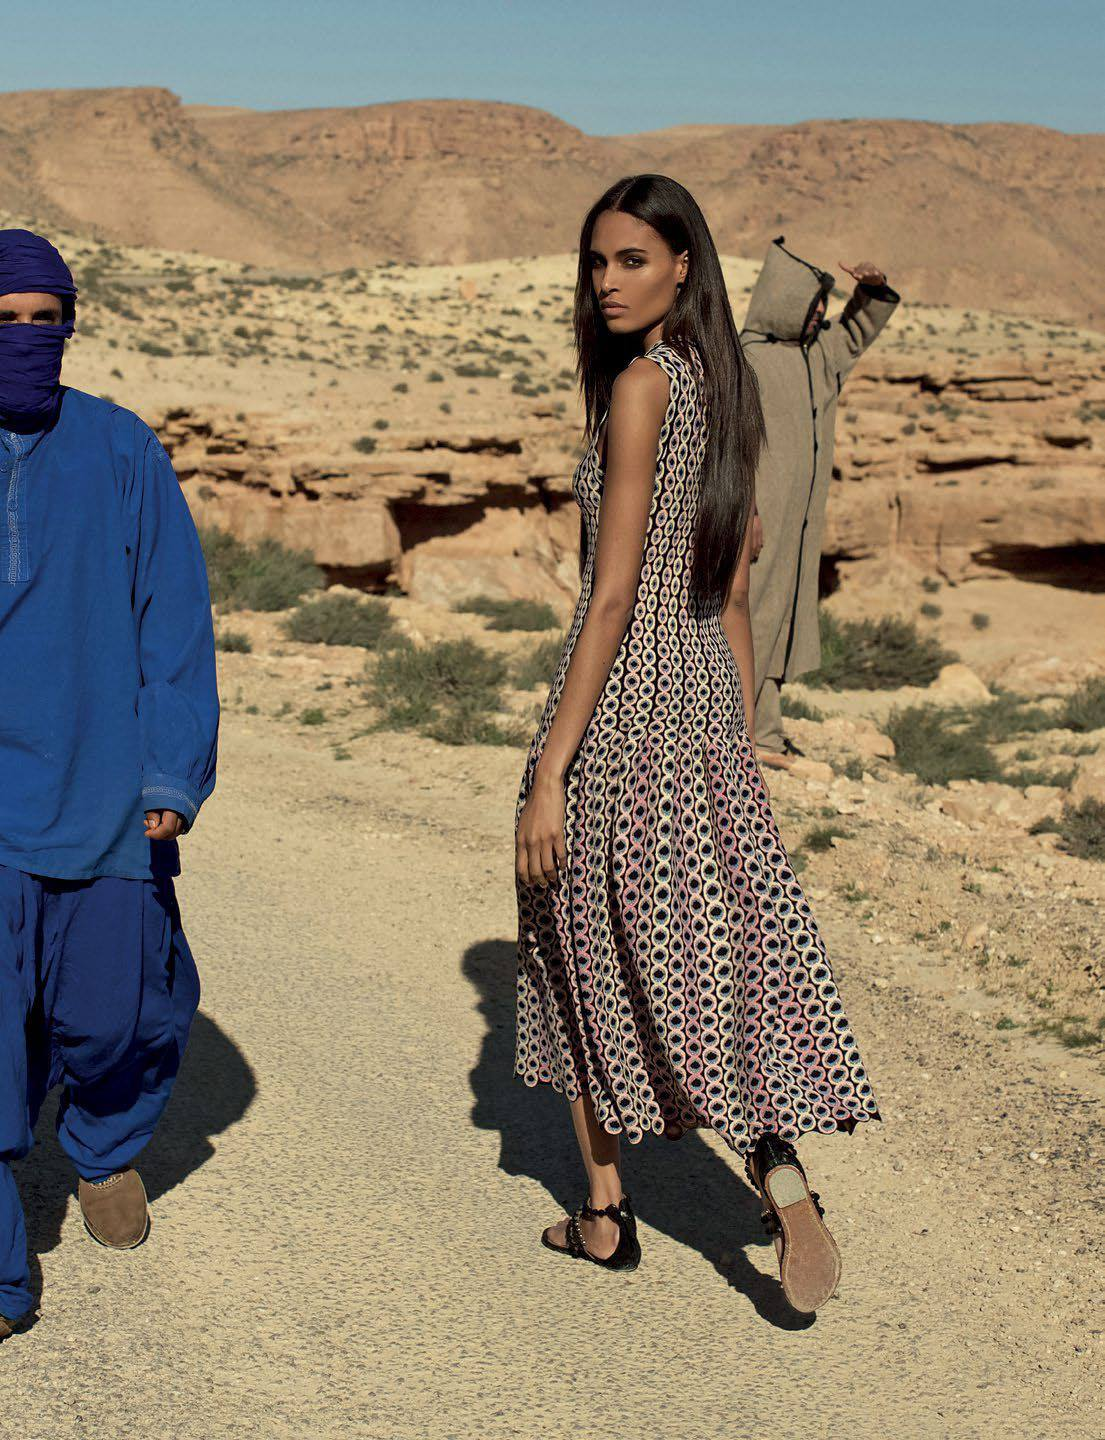 Vogue Arabia March 2018 Cindy Bruna by Julian Torres